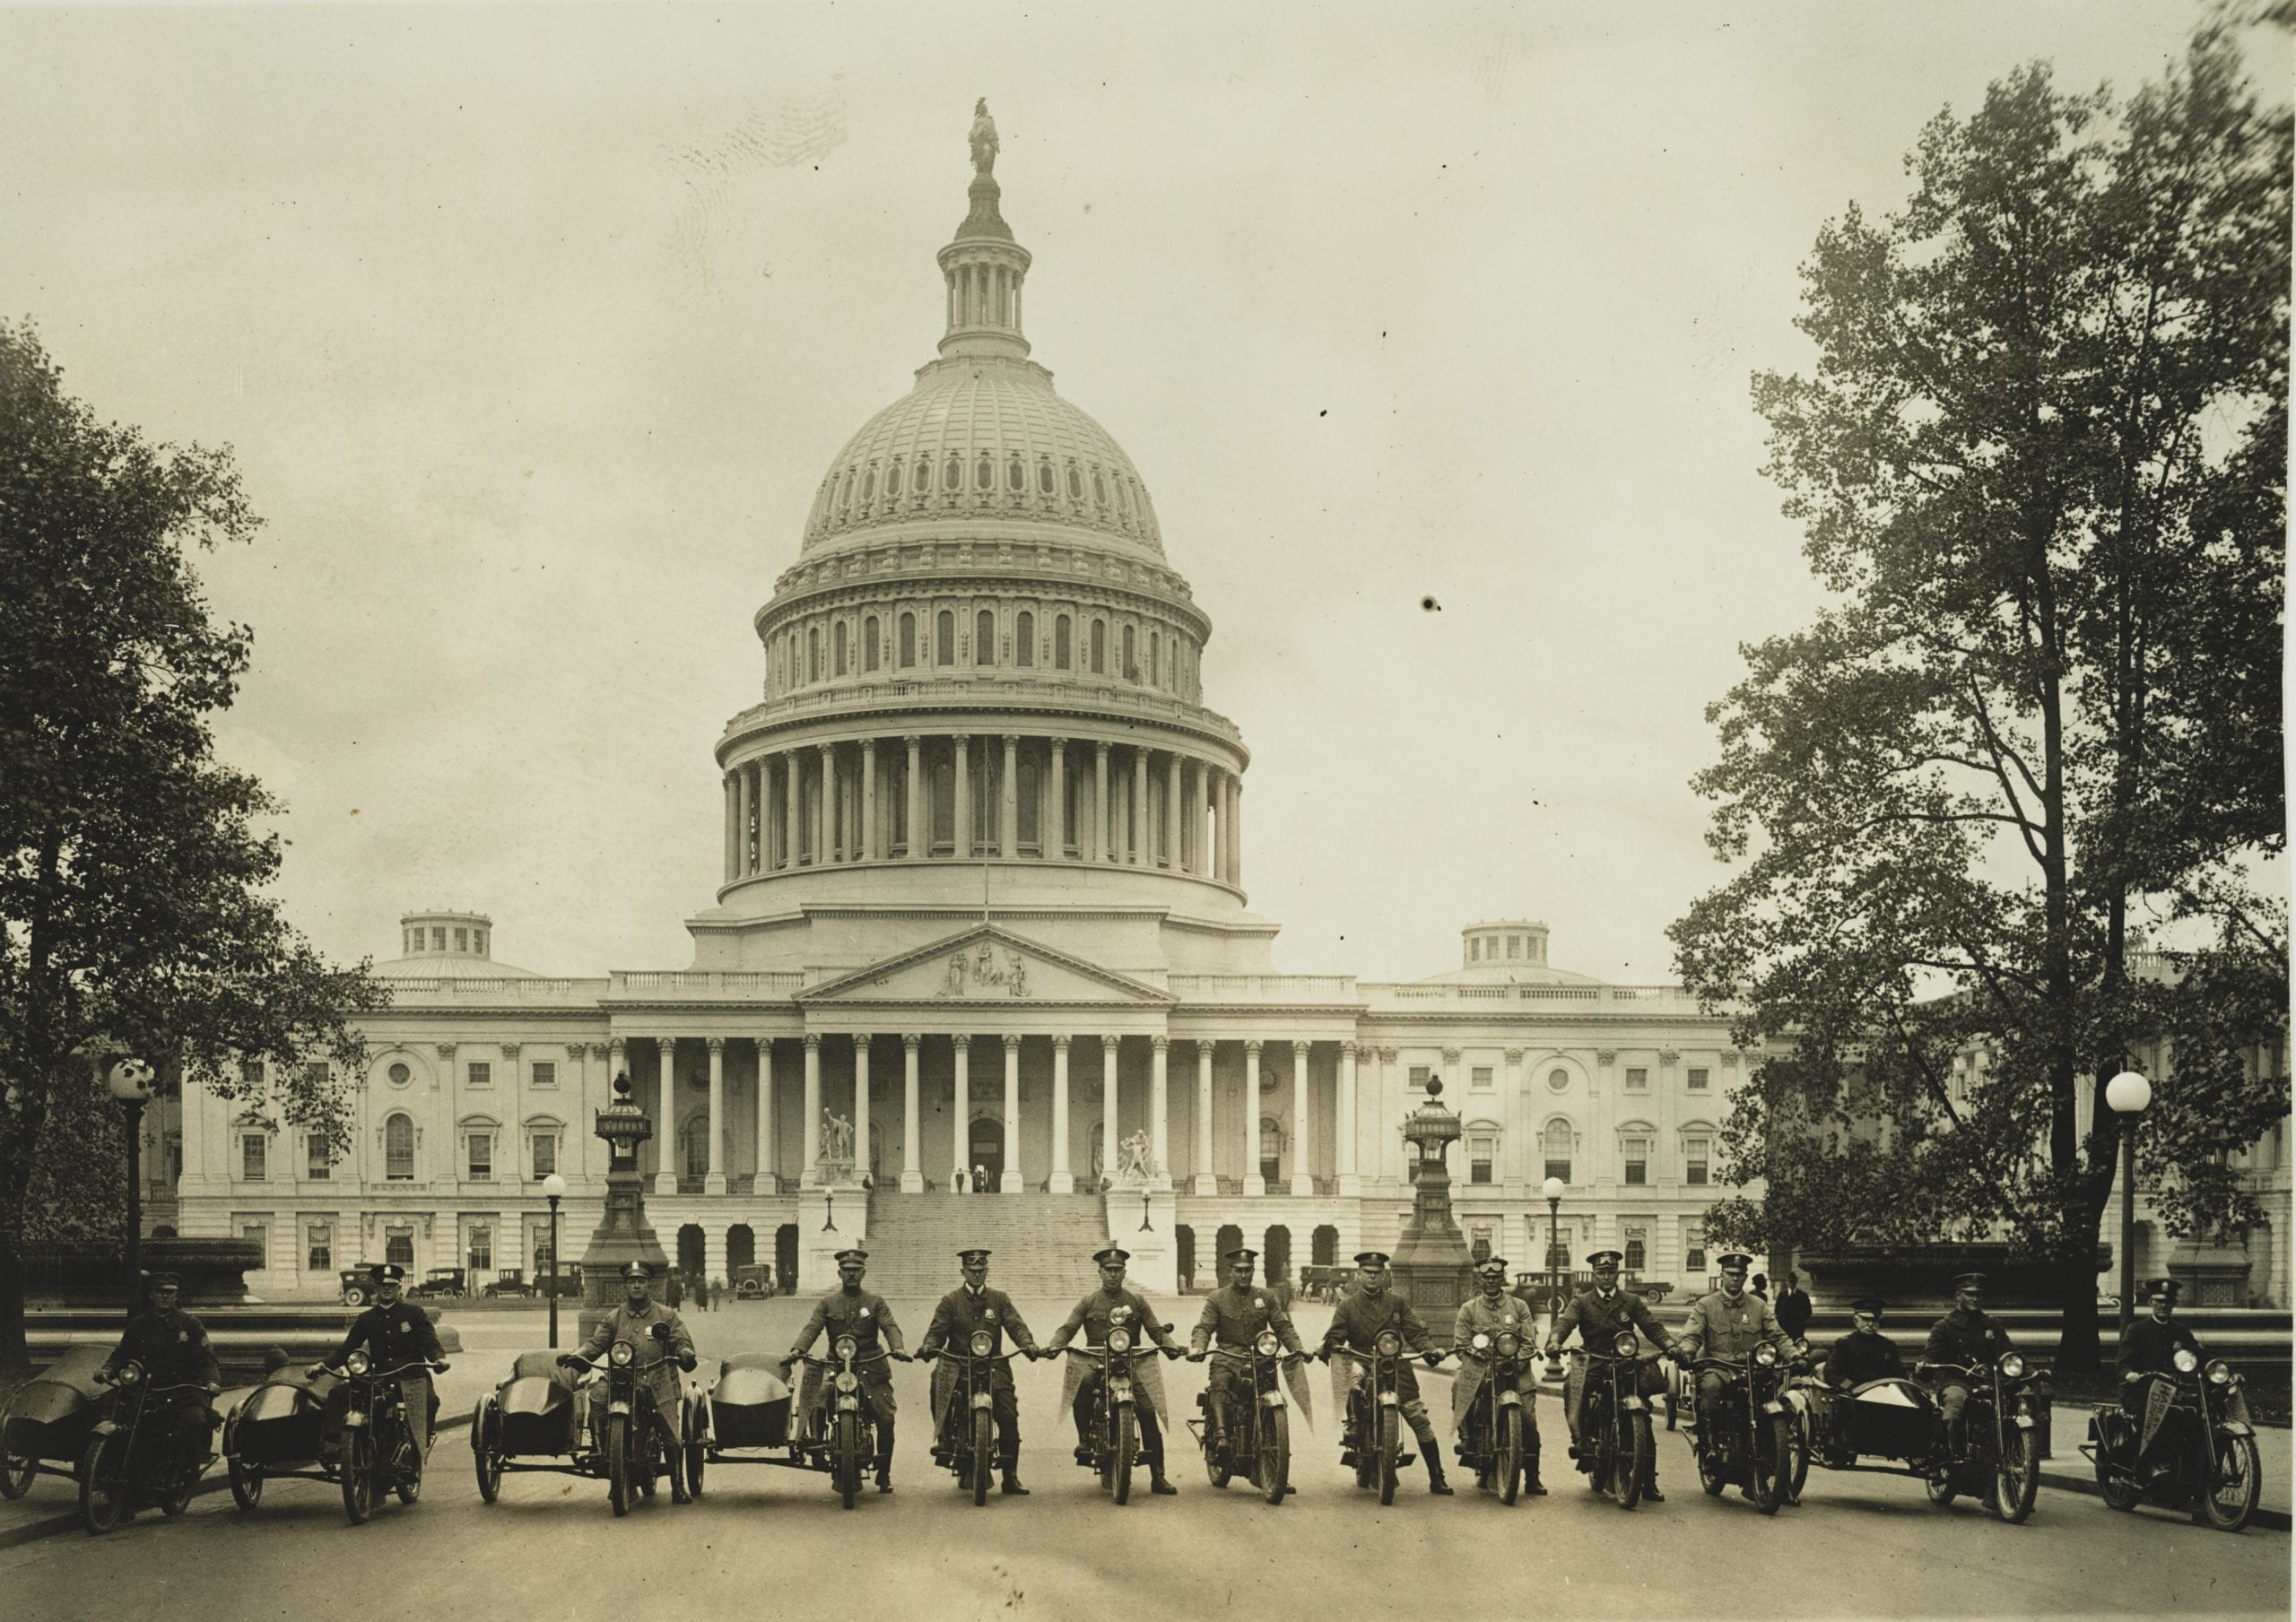 """Photograph shows a group of motorcycle policemen, from left to right: """"Sergt. J.E. Boyle, L.F. Reilly, W.D. Vaughn, F.S. Tyser, L.D. Redman, D.E. Gailmore, G.P. Waite, R.H. Mansfield, G.M. Little, A. Shockey, W.C. Lewis, [and] Capt. J.A. Abbott"""" with view of the U.S. Capitol in the background."""